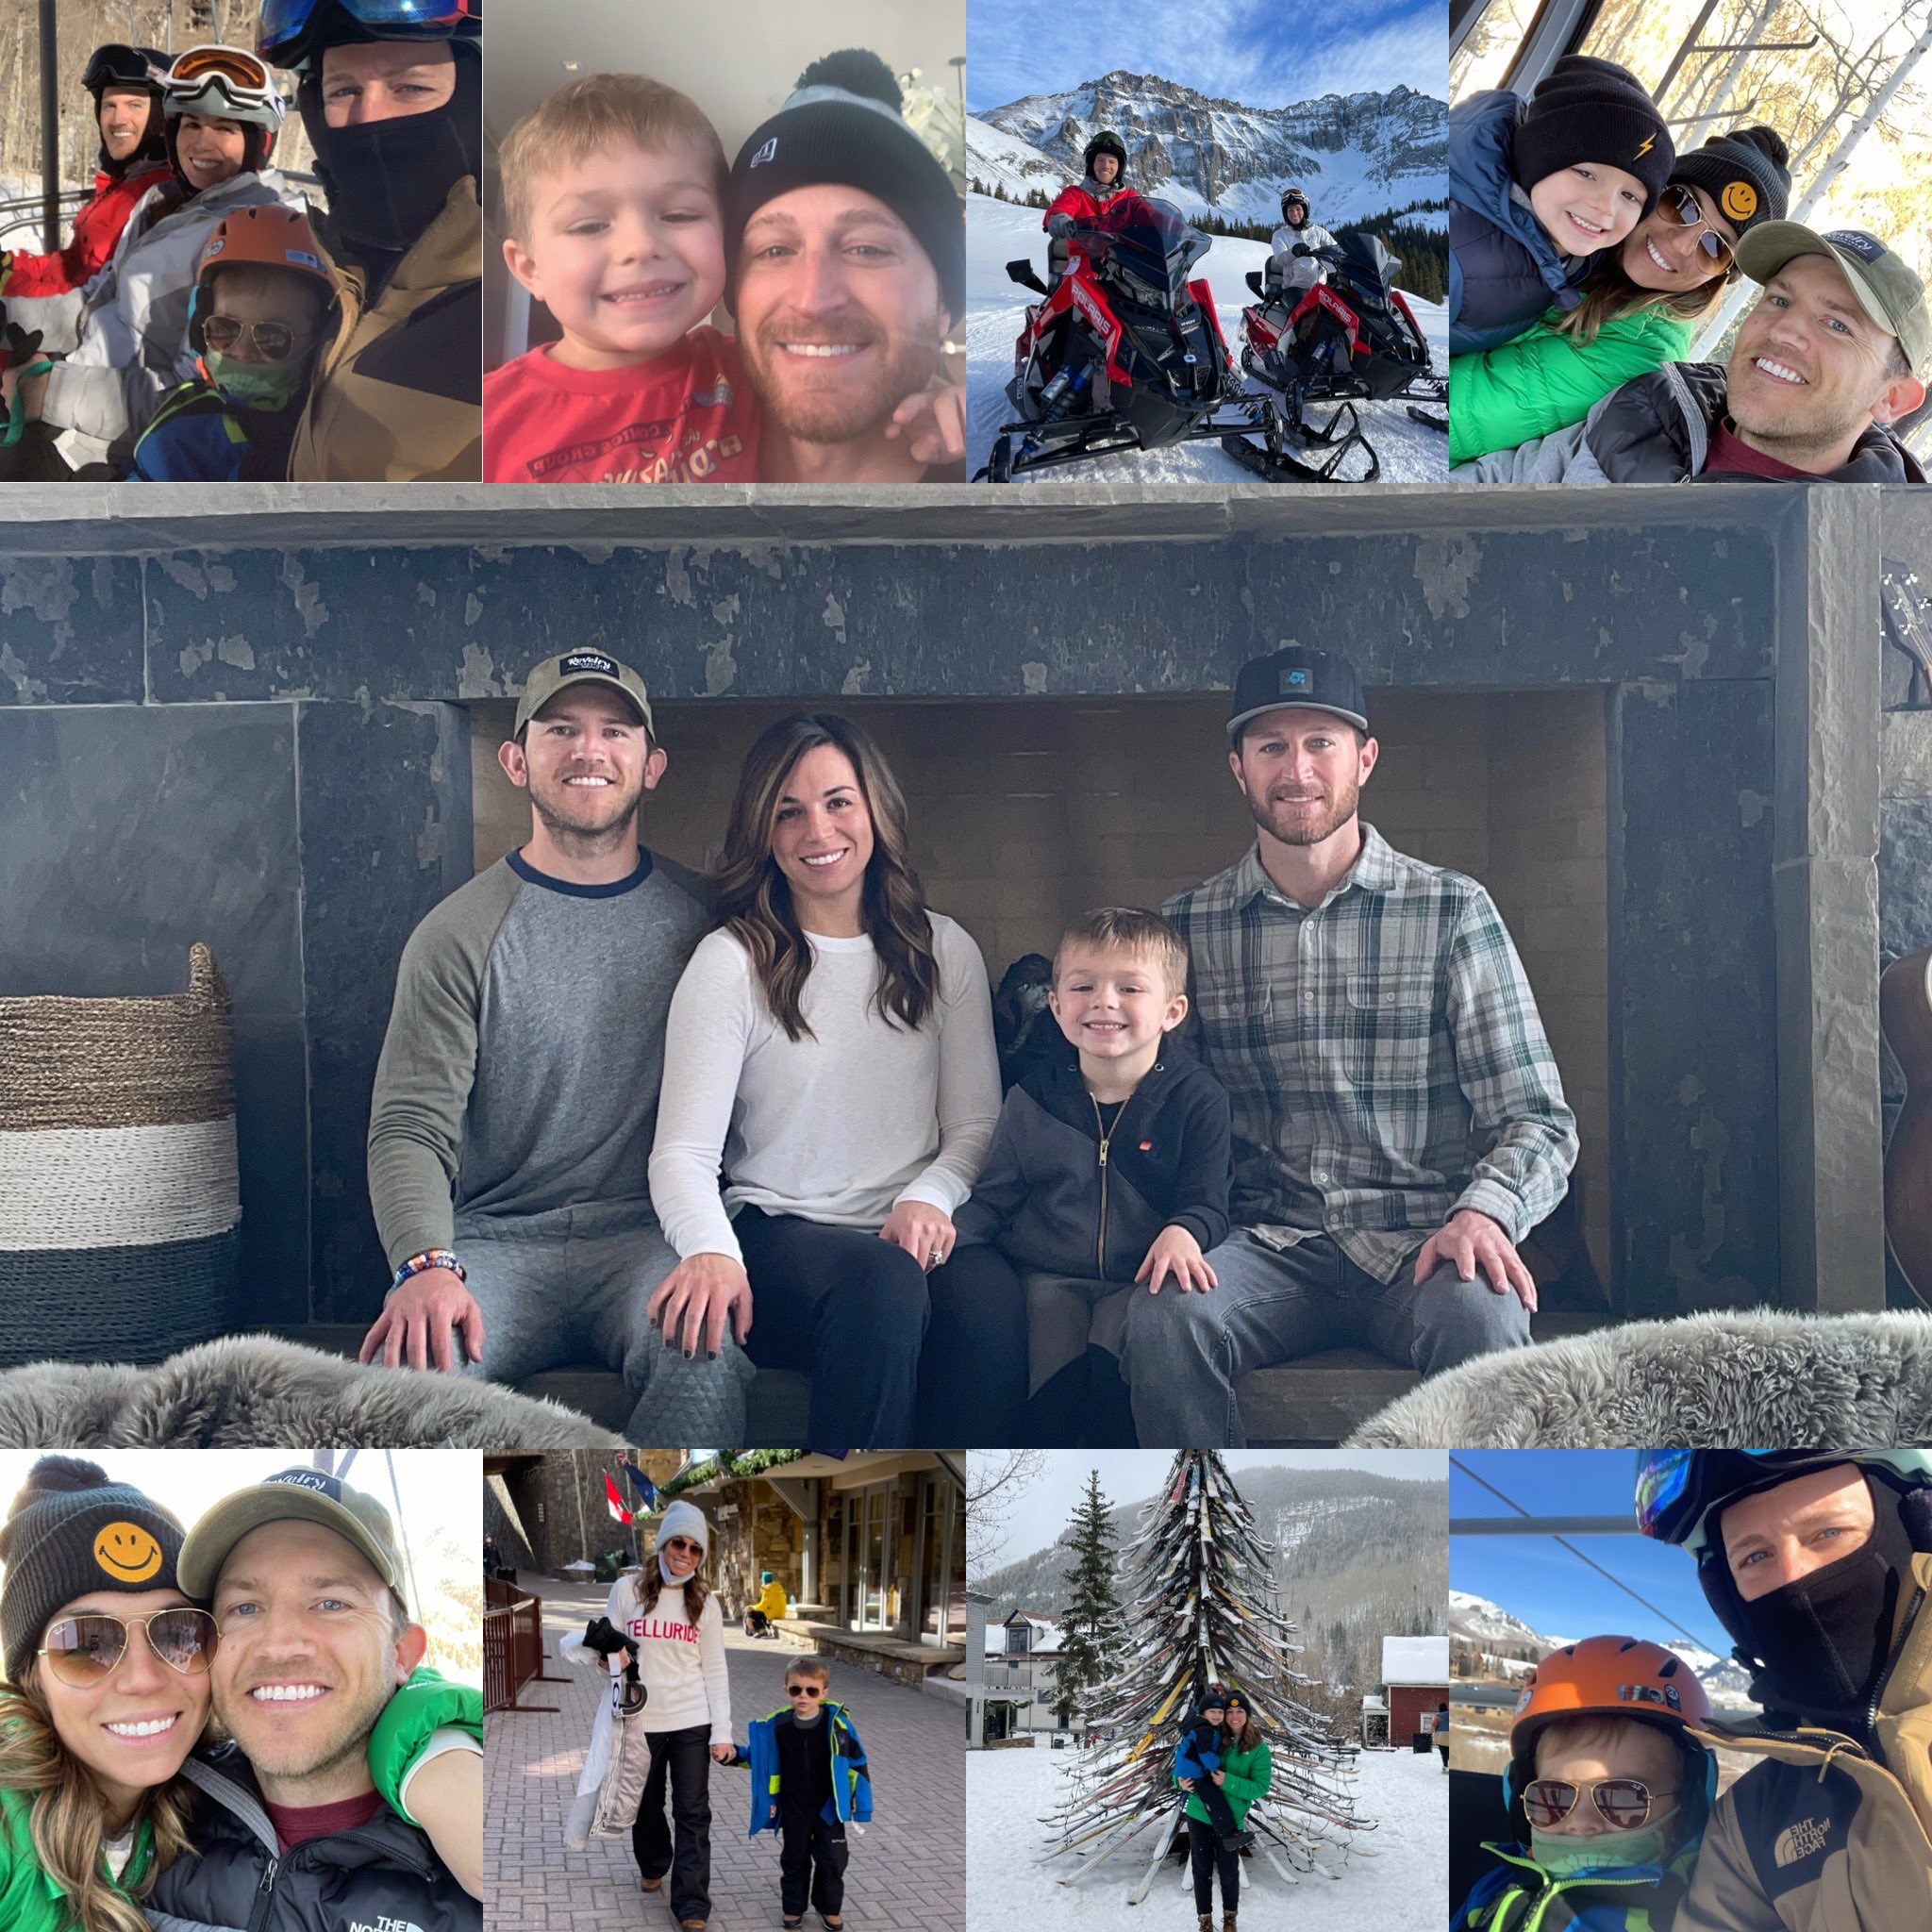 Samantha Sheets on holiday together with Kase Kahne, son and husband